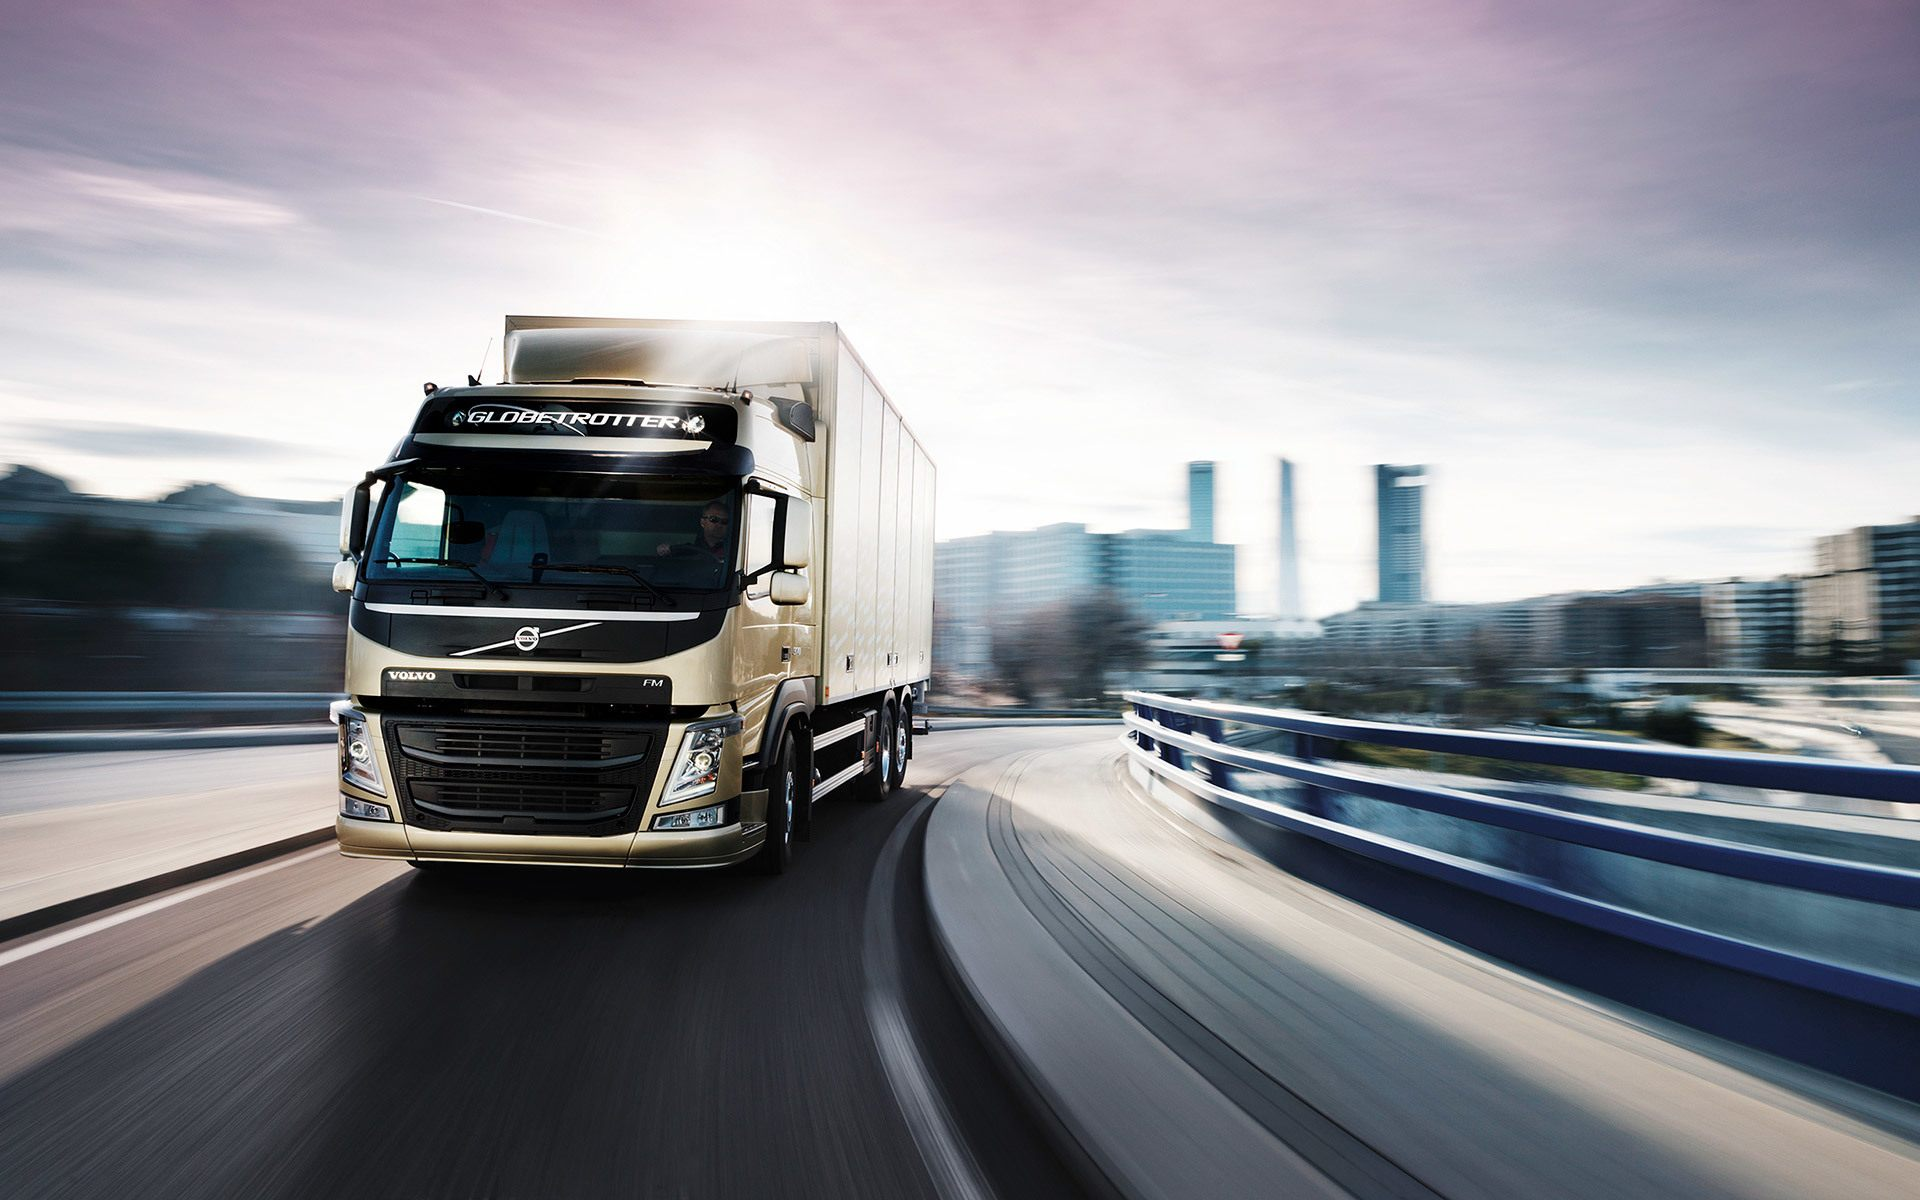 Collection of Truck Wallpaper on HDWallpapers